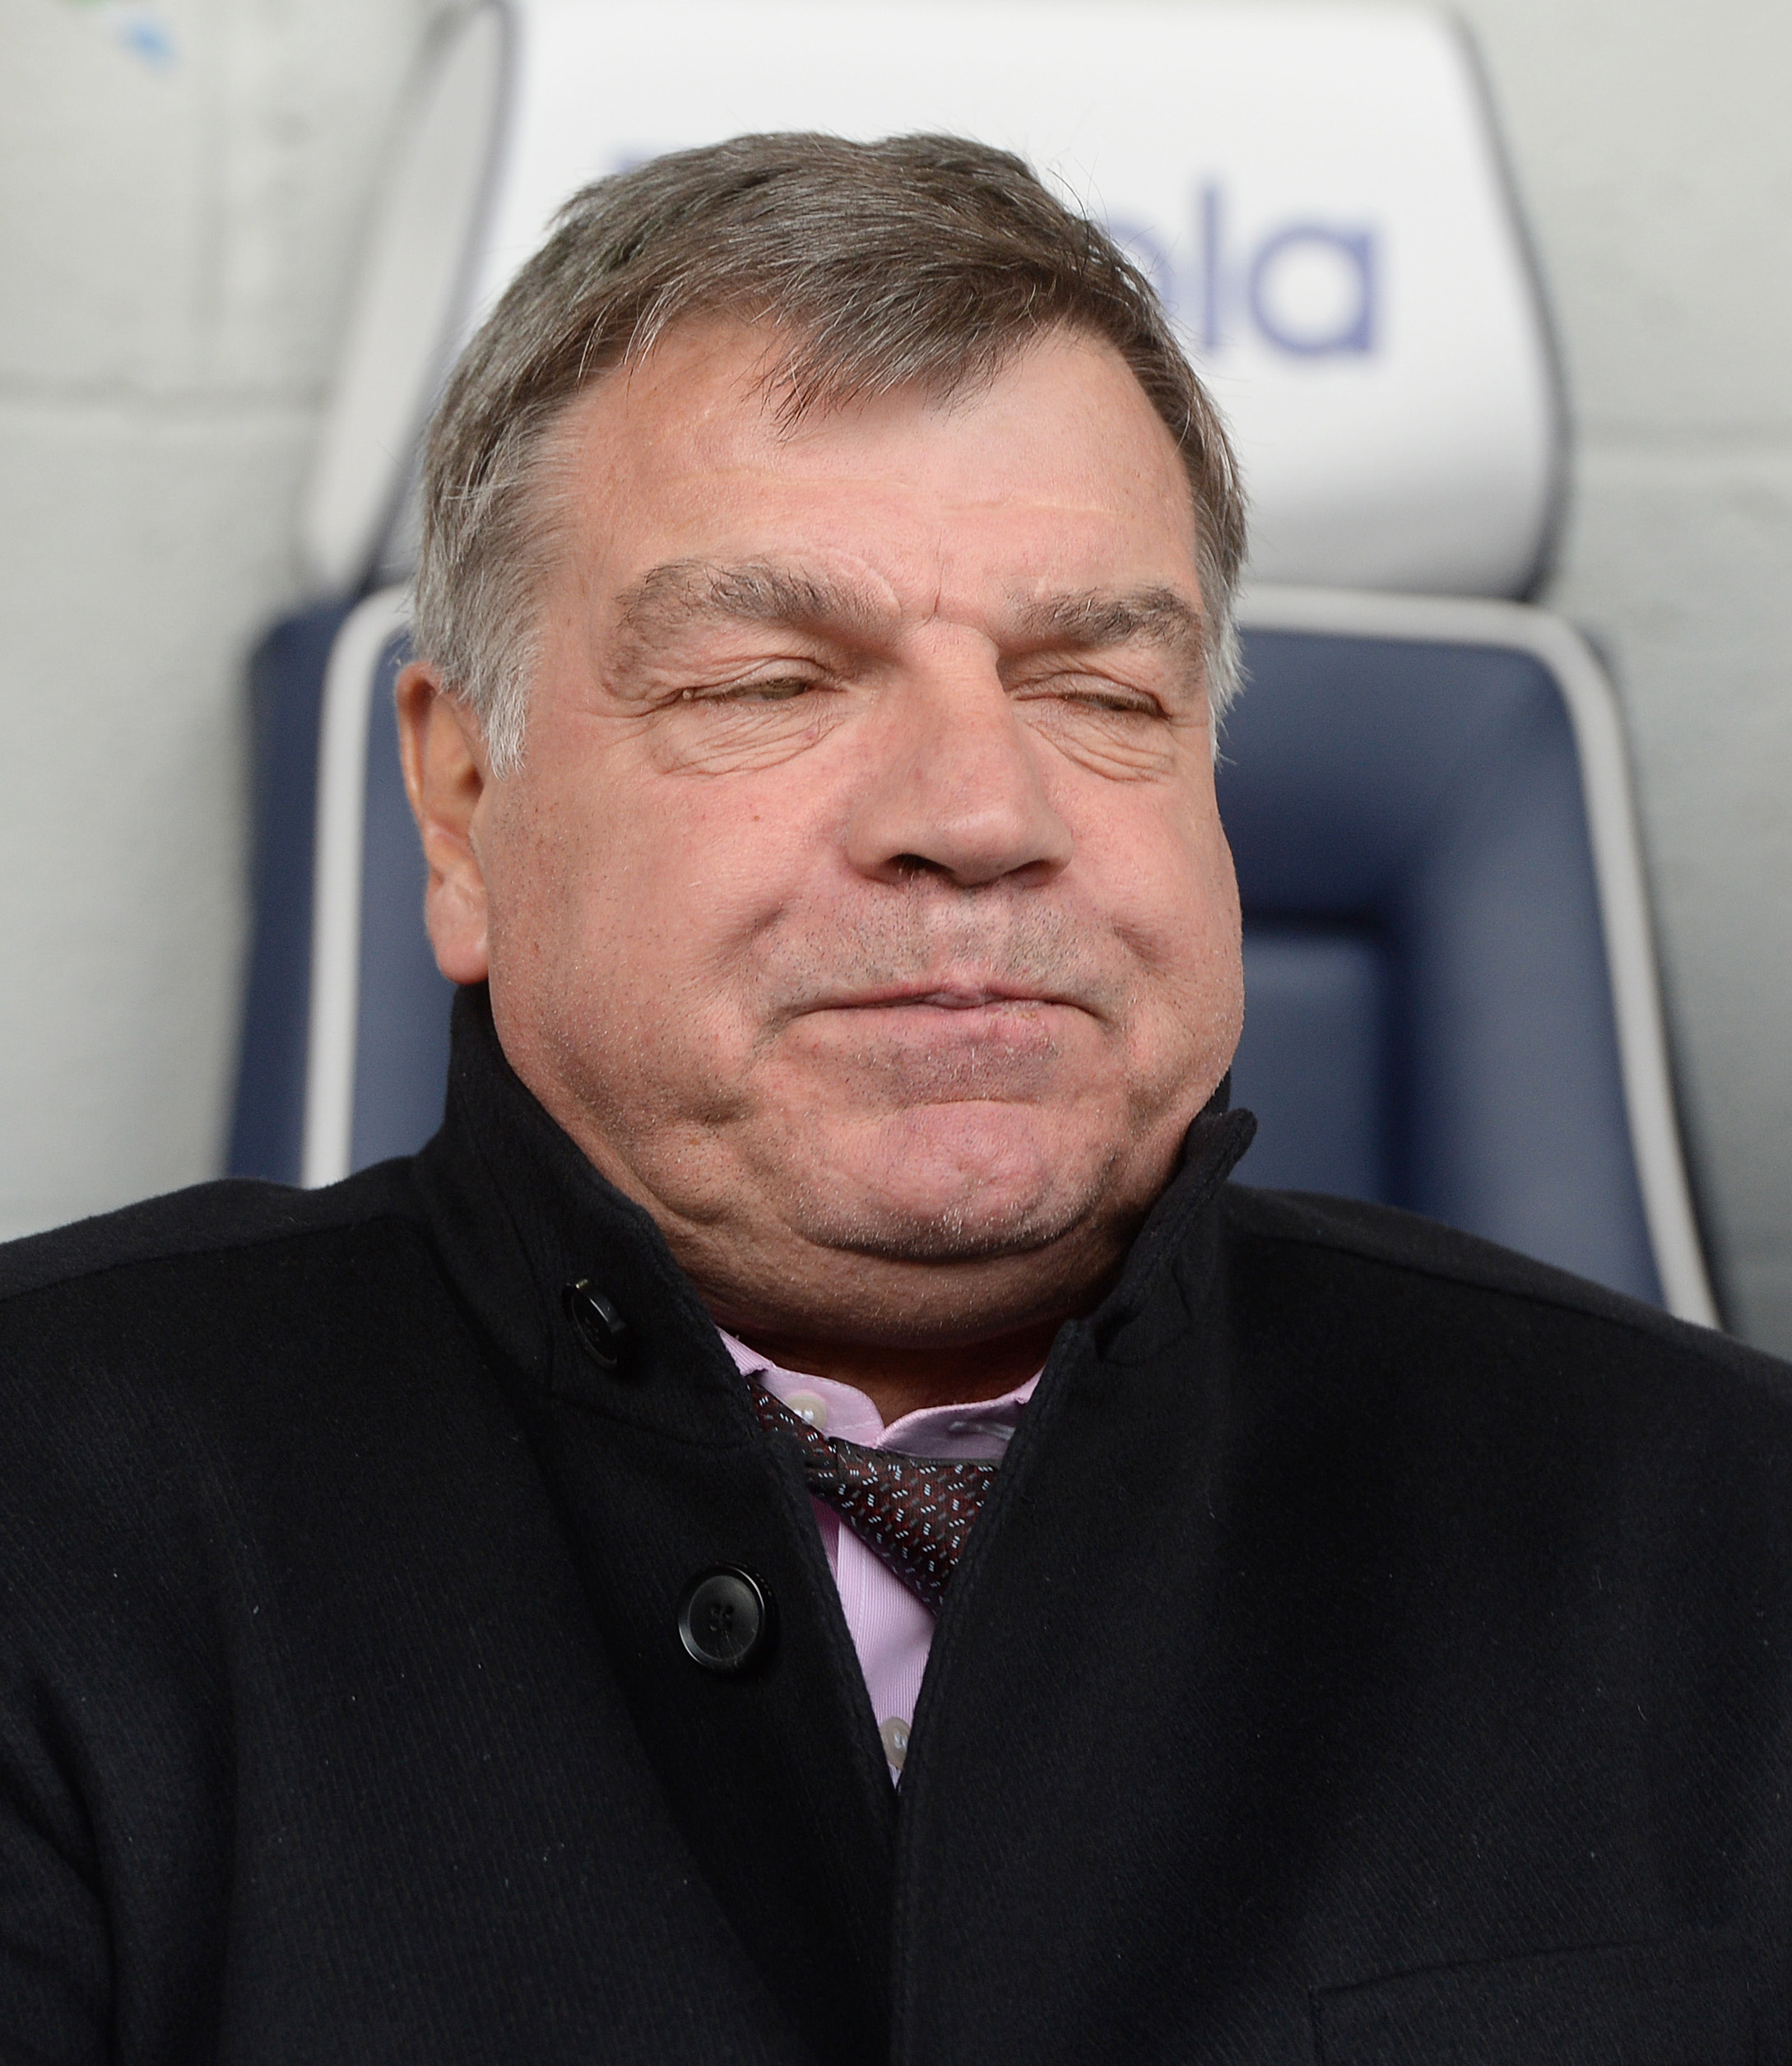 Sam Allardyce will be sacked at the end of the season, according to reports. Picture: Action Images